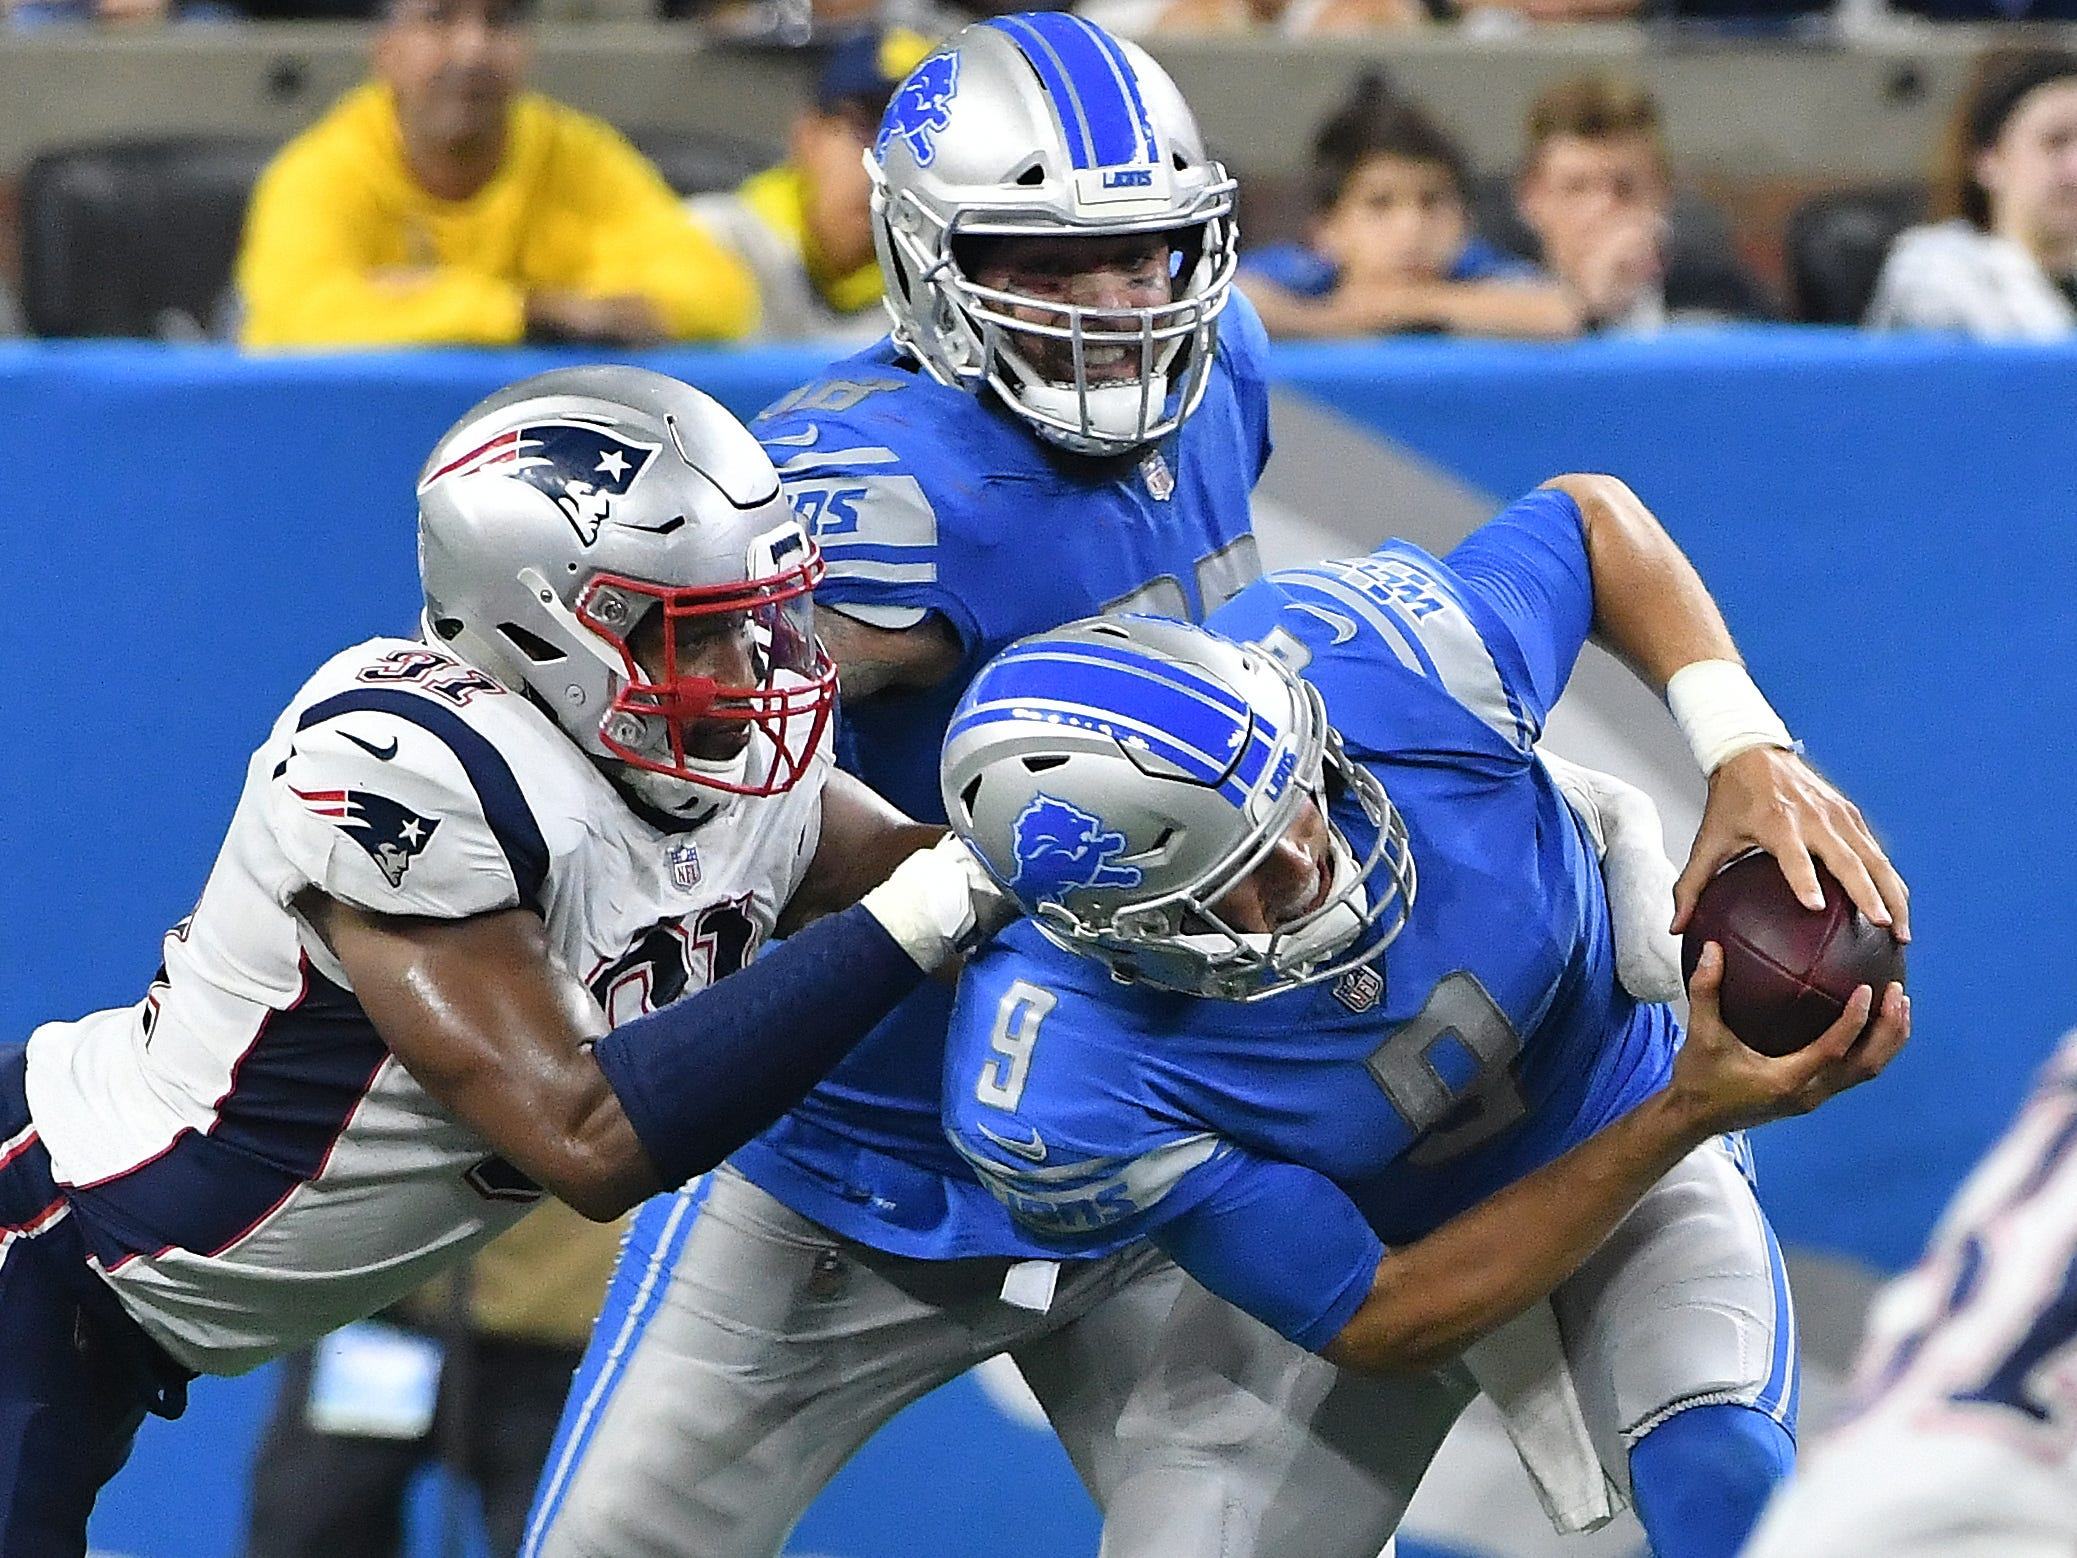 Patriots' Deatrich Wise Jr. gets under Lions offensive lineman Taylor Decker and gets to quarterback Matthew Stafford, getting a sack in the 3rd quarter.